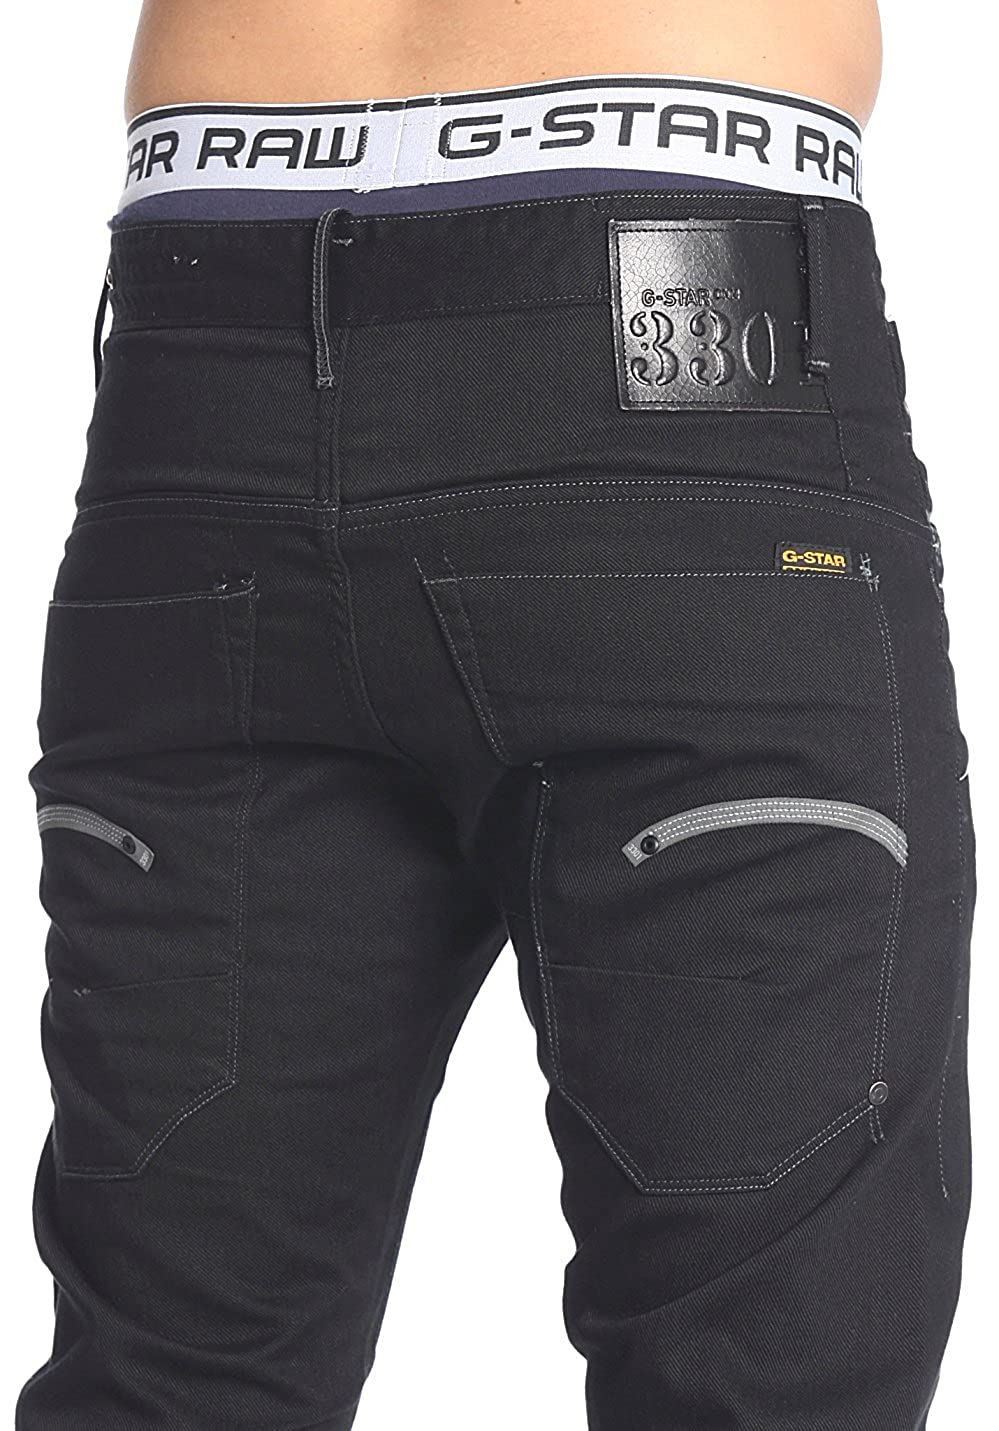 Amazon.com: G-Star Raw Structor Slim Jeans - Pantalones ...